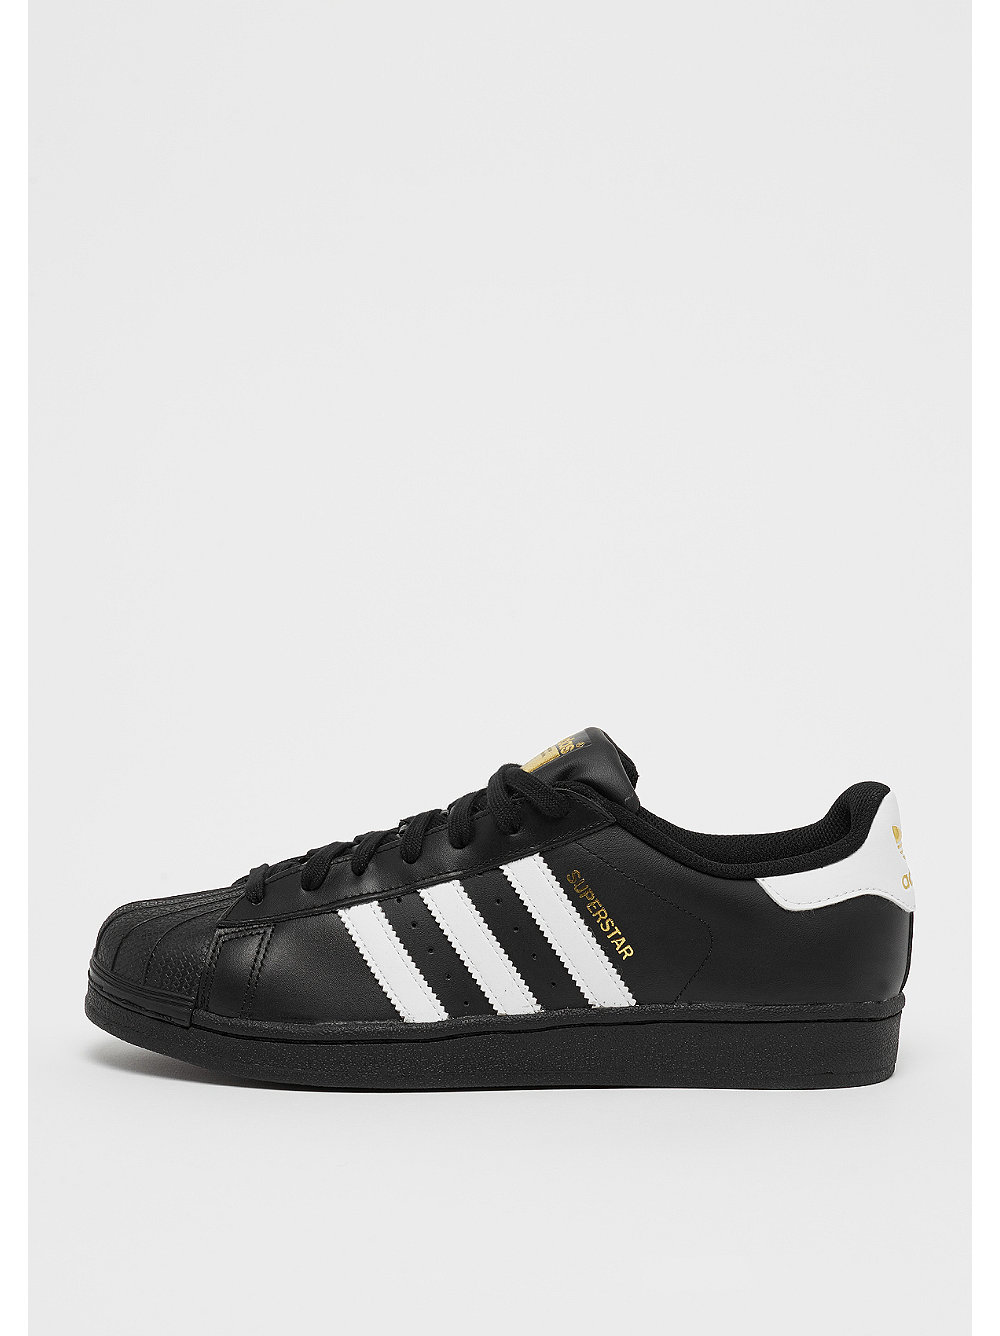 adidas Superstar II black-white